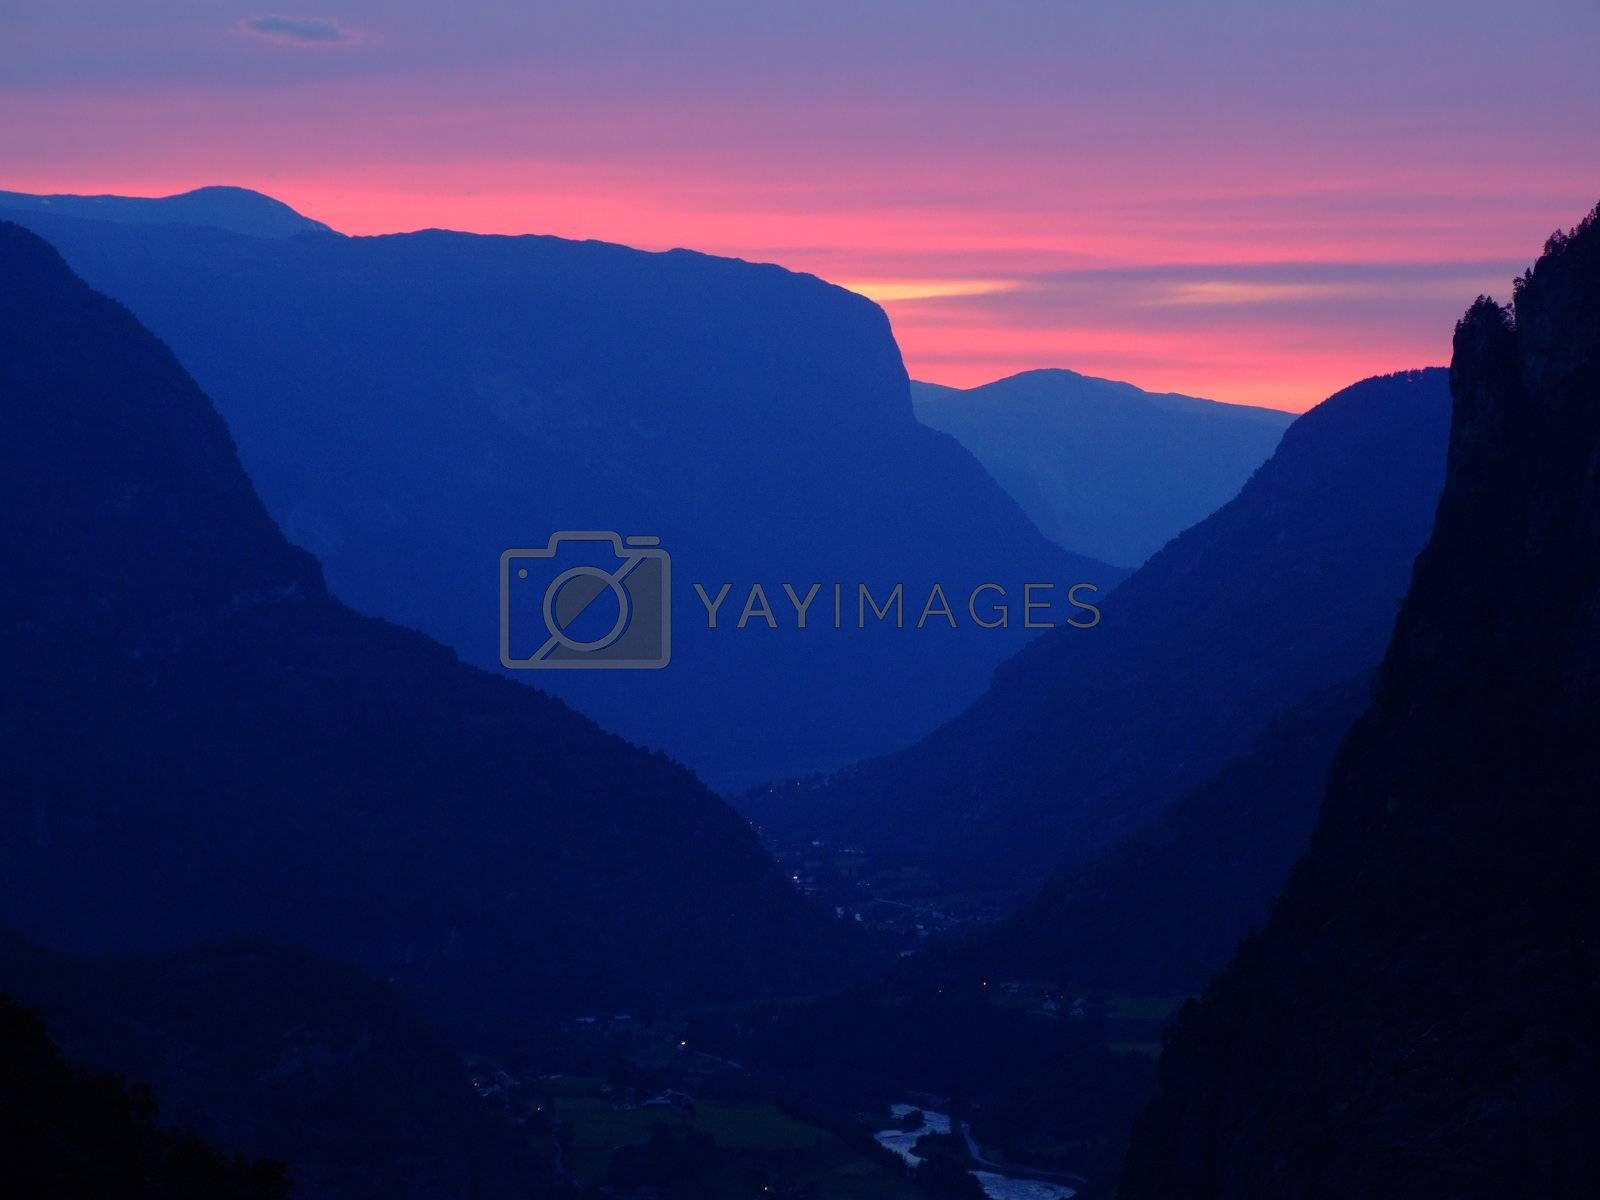 Sunset in Norway by ArtmannWitte